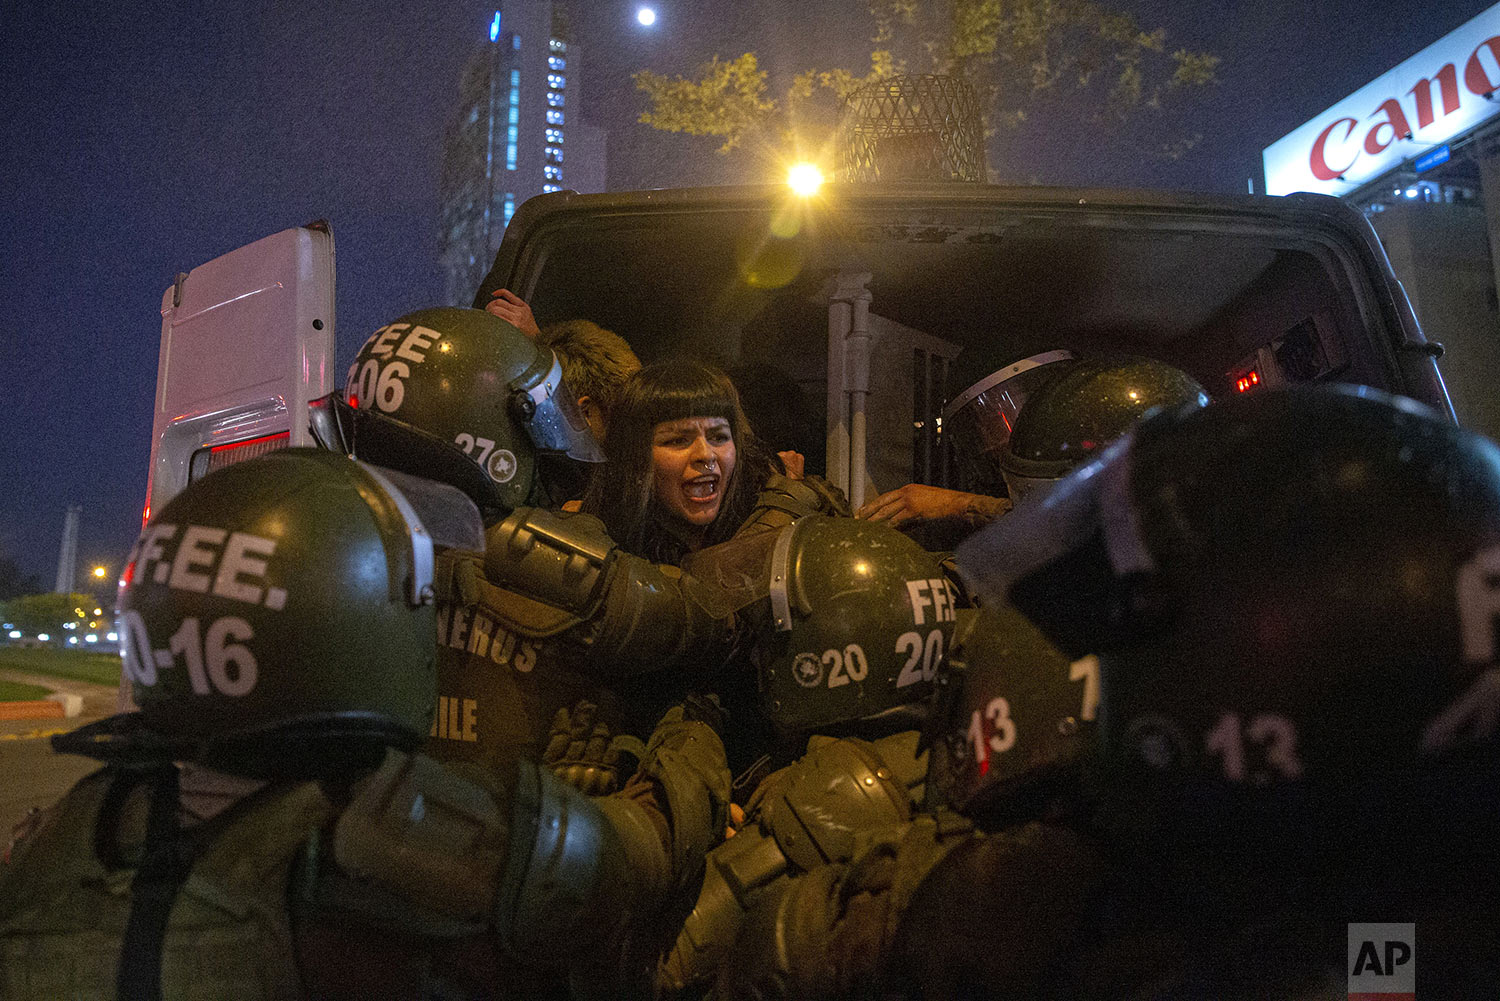 A woman is detained by police during a feminist protest marking the 46th anniversary of the military coup that ousted the late President Salvador Allende, in Santiago, Chile, Wednesday, Sept. 11, 2019. (AP Photo/Esteban Felix)